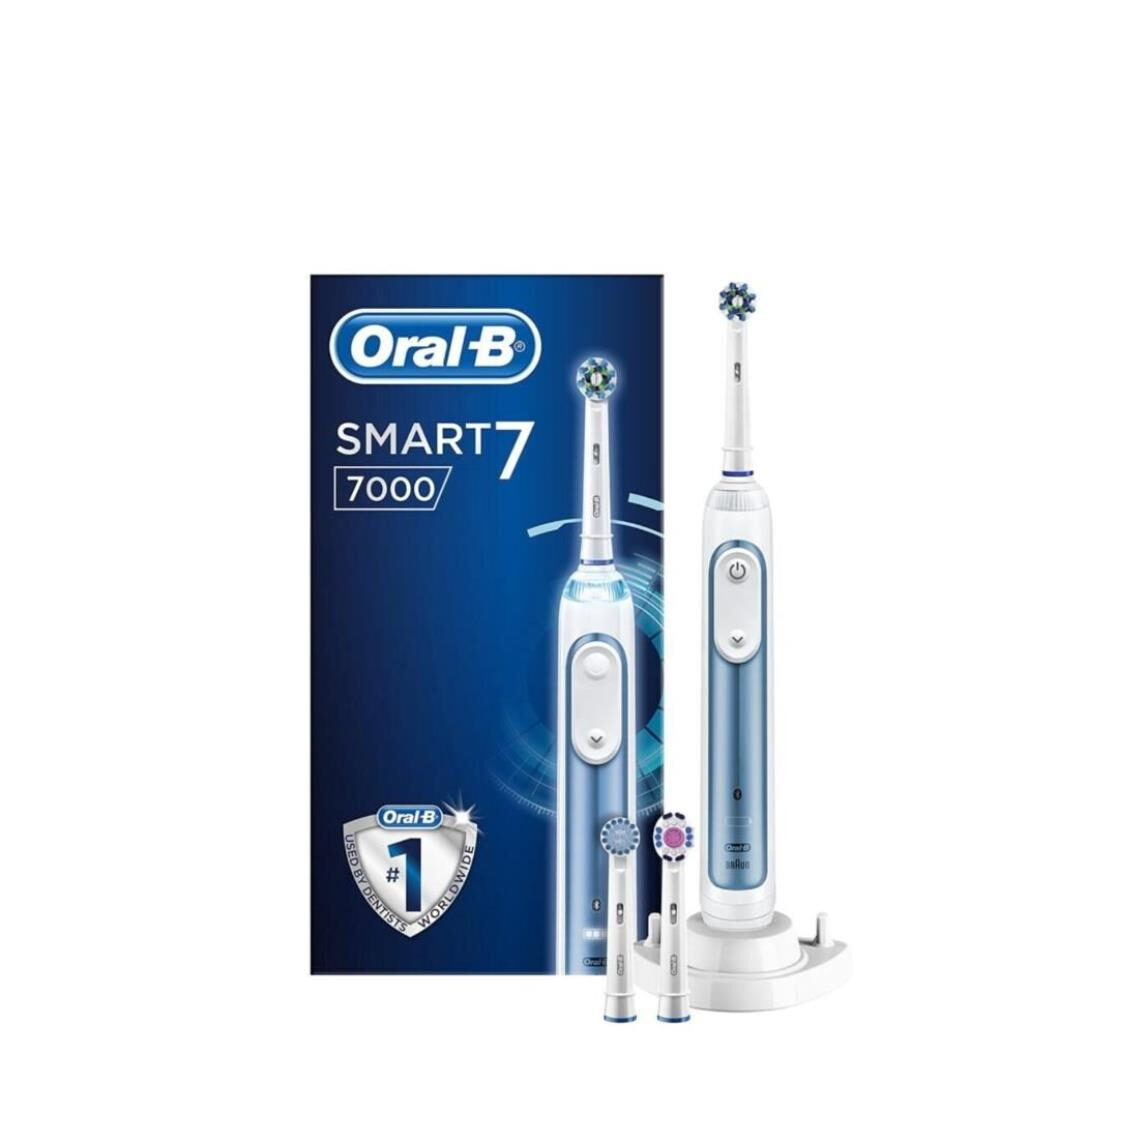 Oral B Smart 7000 Rechargeable Electric Toothbrush Round Oscillation Cleaning Bluetooth White Braun